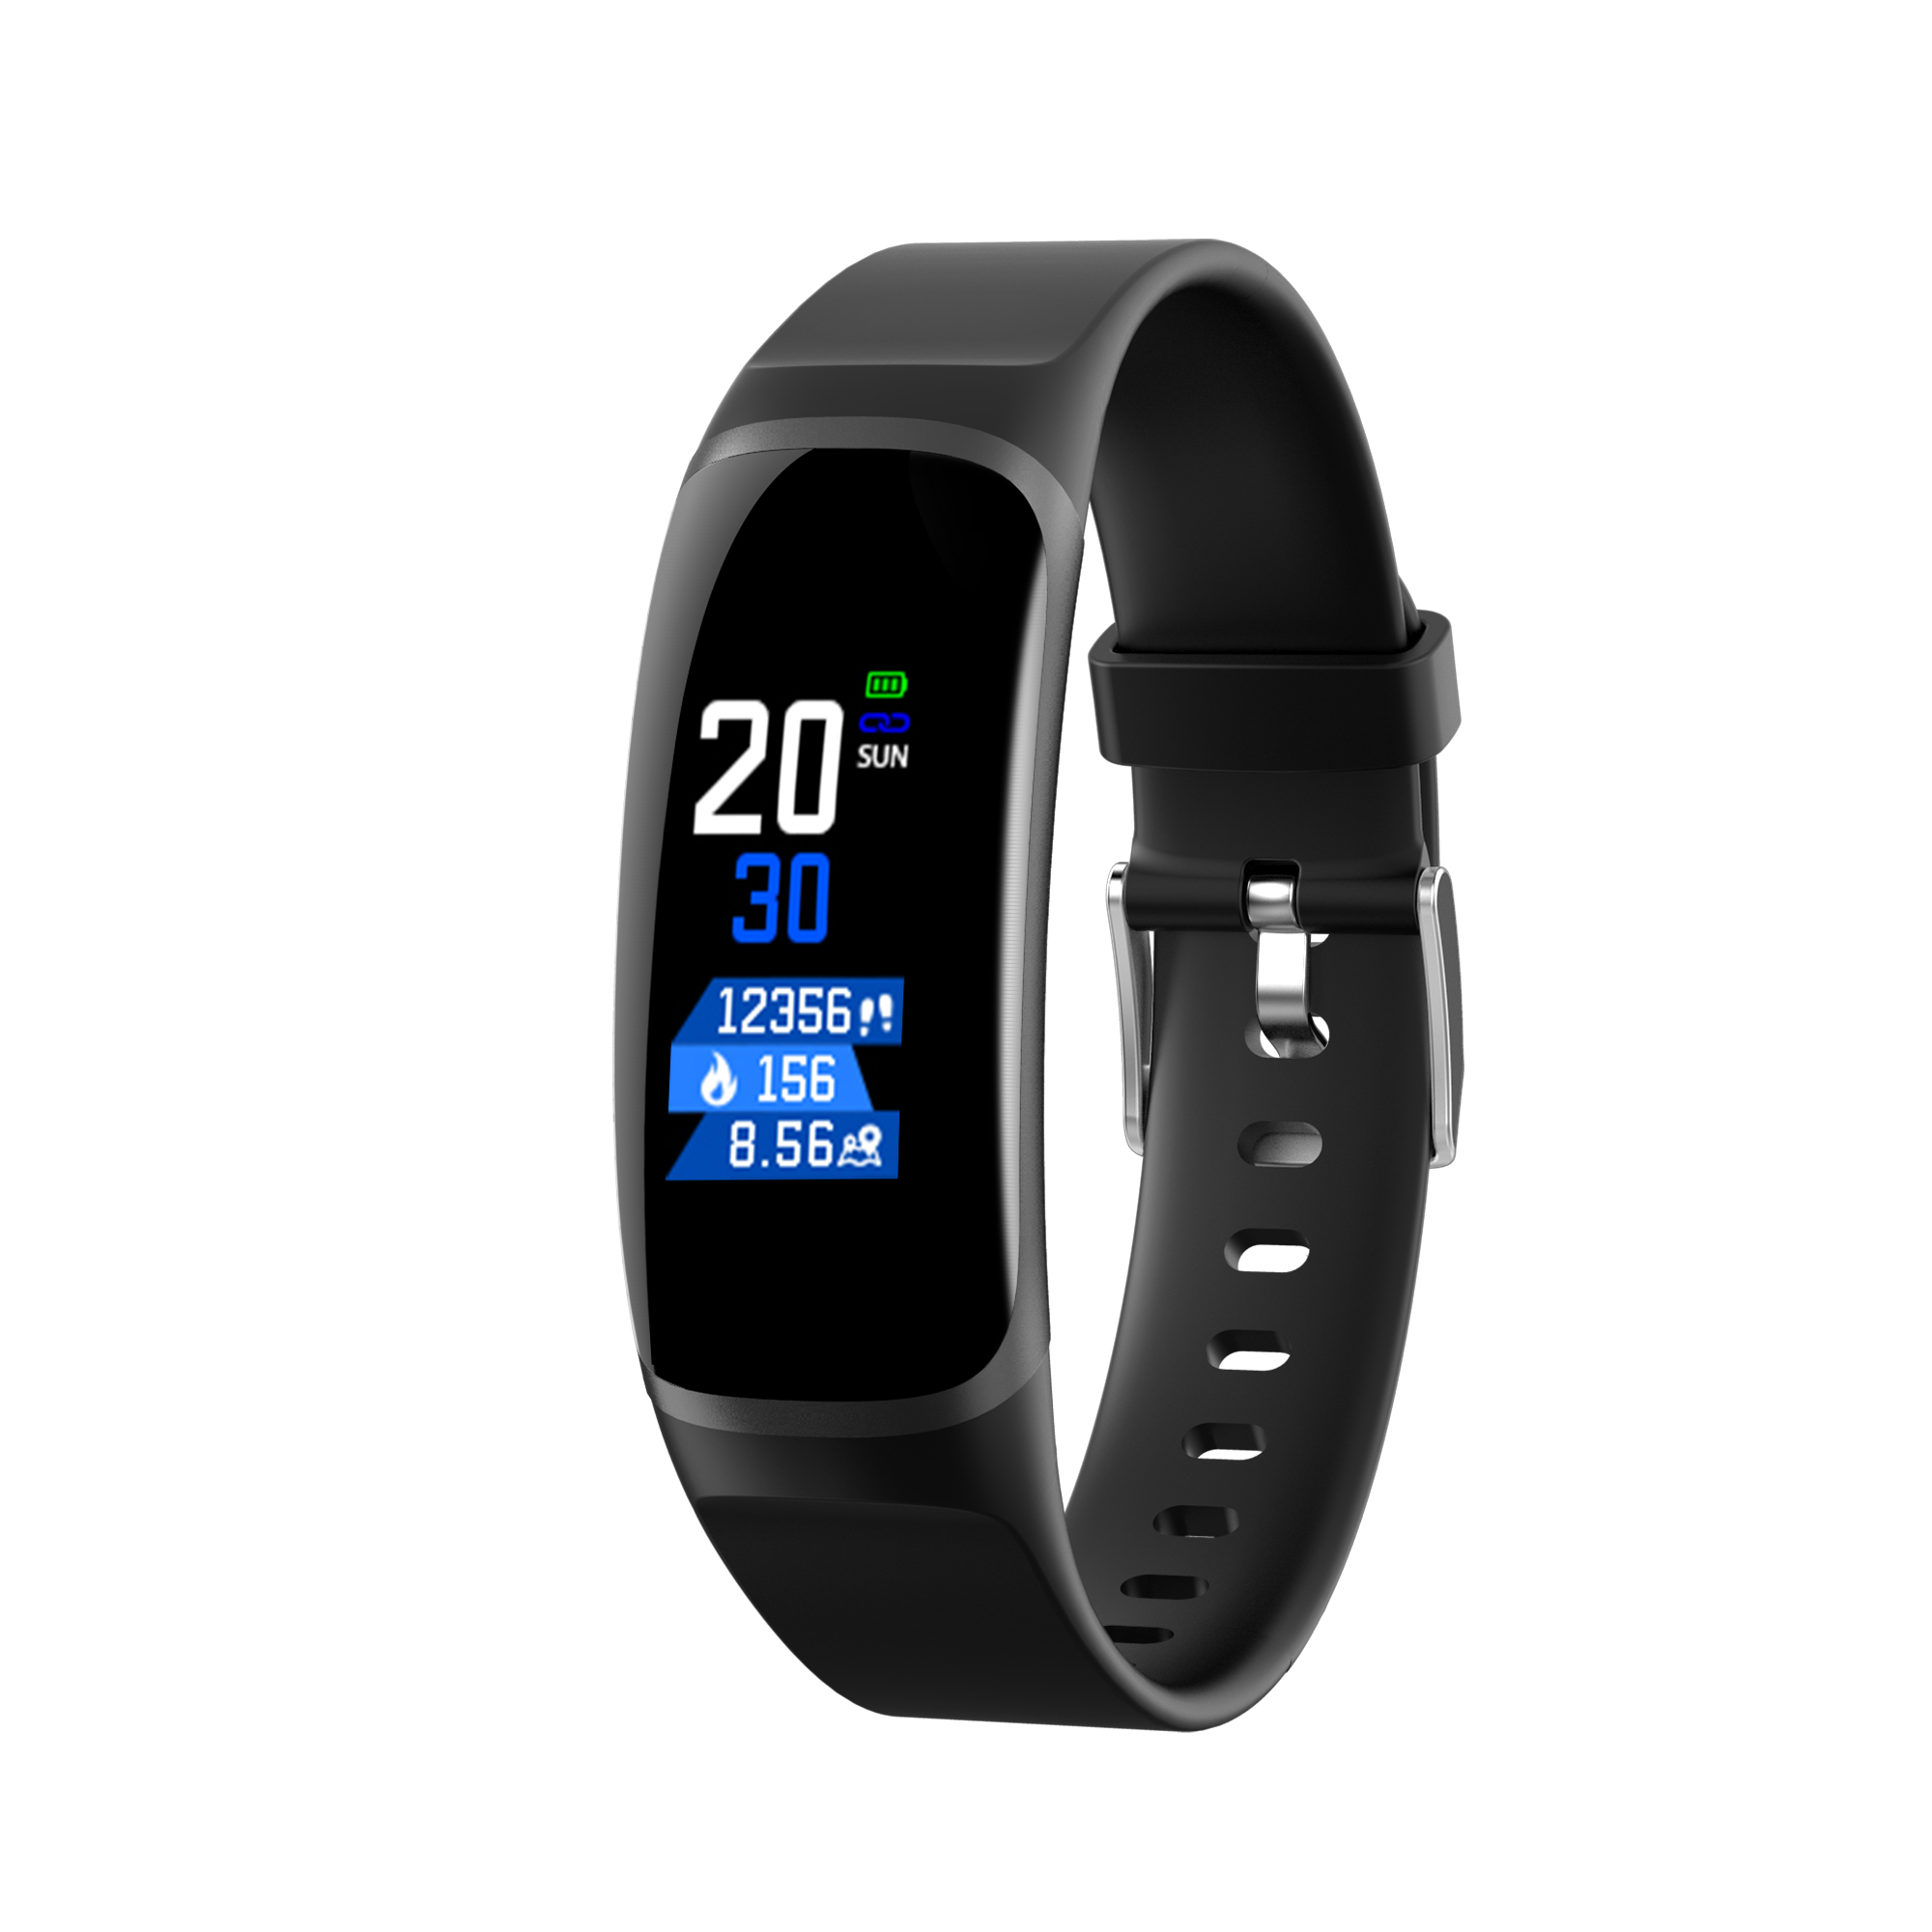 Flanagan MK04 Smart Bracelet Color Screen Blood Pressure Fitness Tracker Heart Rate Monitor Smart Band Sport For Android IOSFlanagan MK04 Smart Bracelet Color Screen Blood Pressure Fitness Tracker Heart Rate Monitor Smart Band Sport For Android IOS